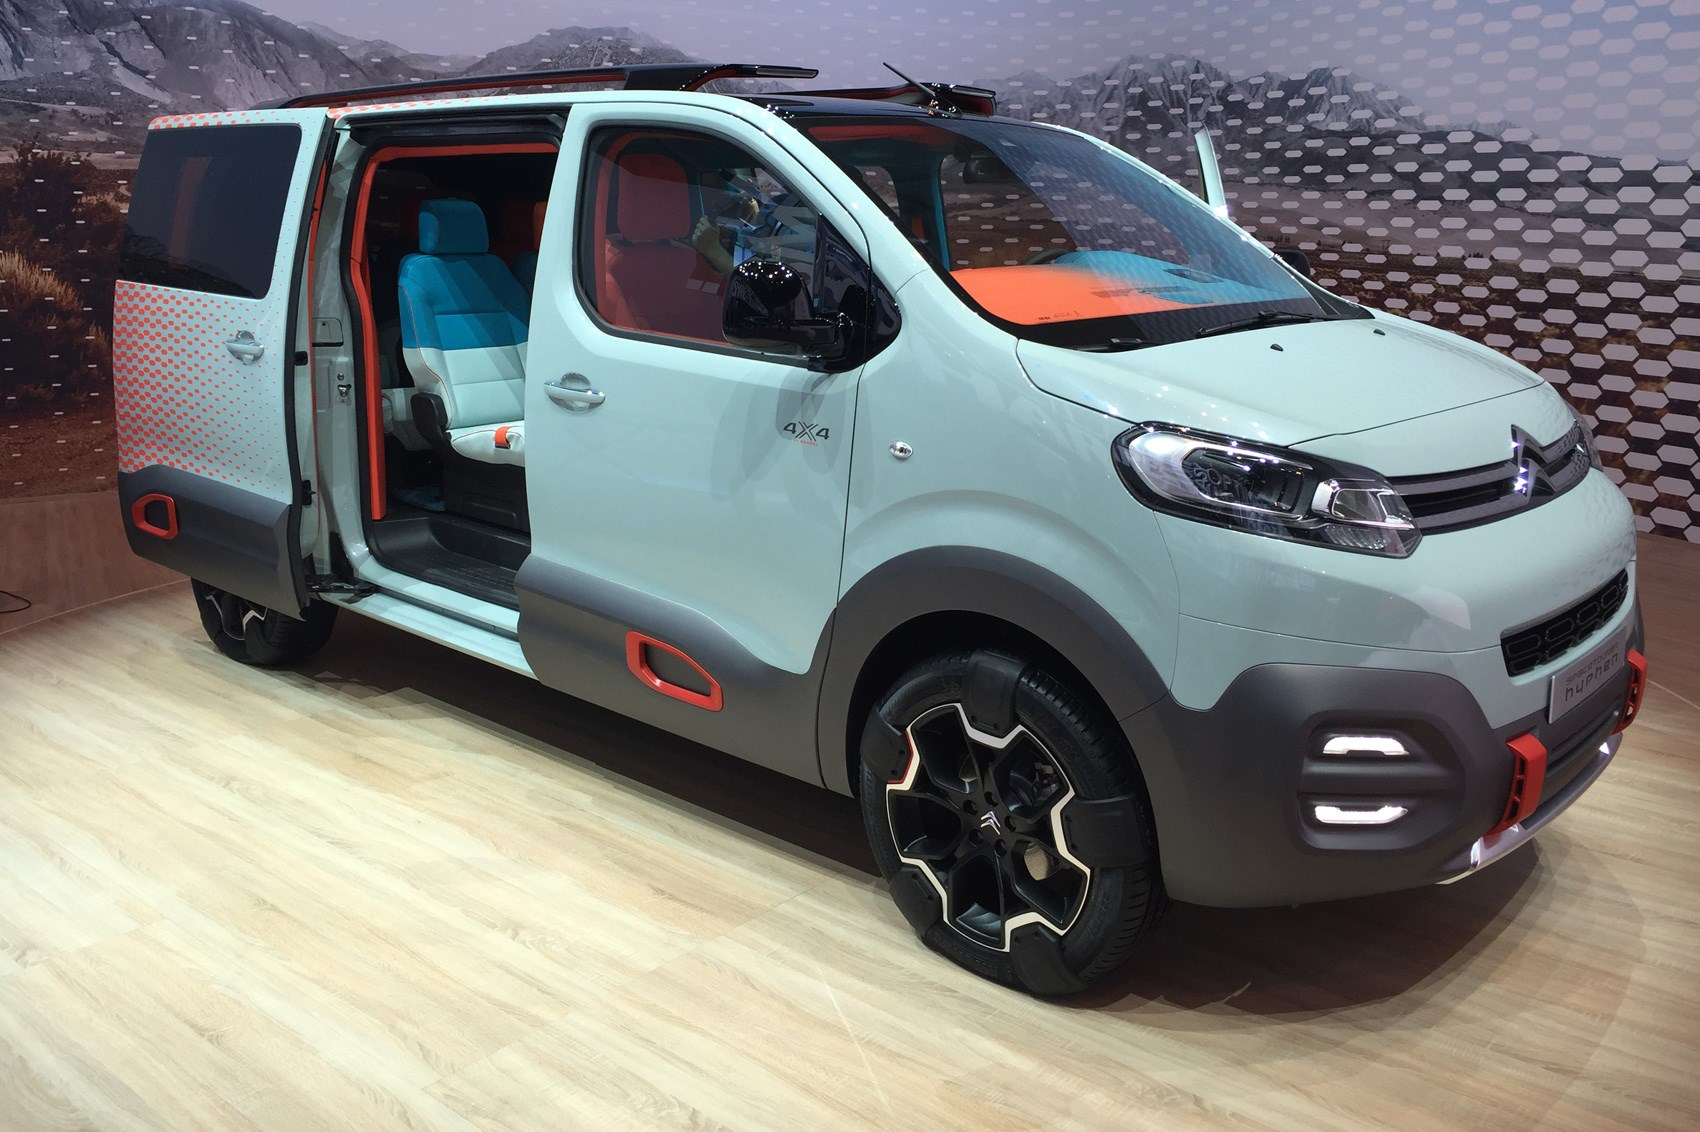 citroen spacetourer hyphen concept improbably named 4x4 mpv for geneva 2016 car magazine. Black Bedroom Furniture Sets. Home Design Ideas